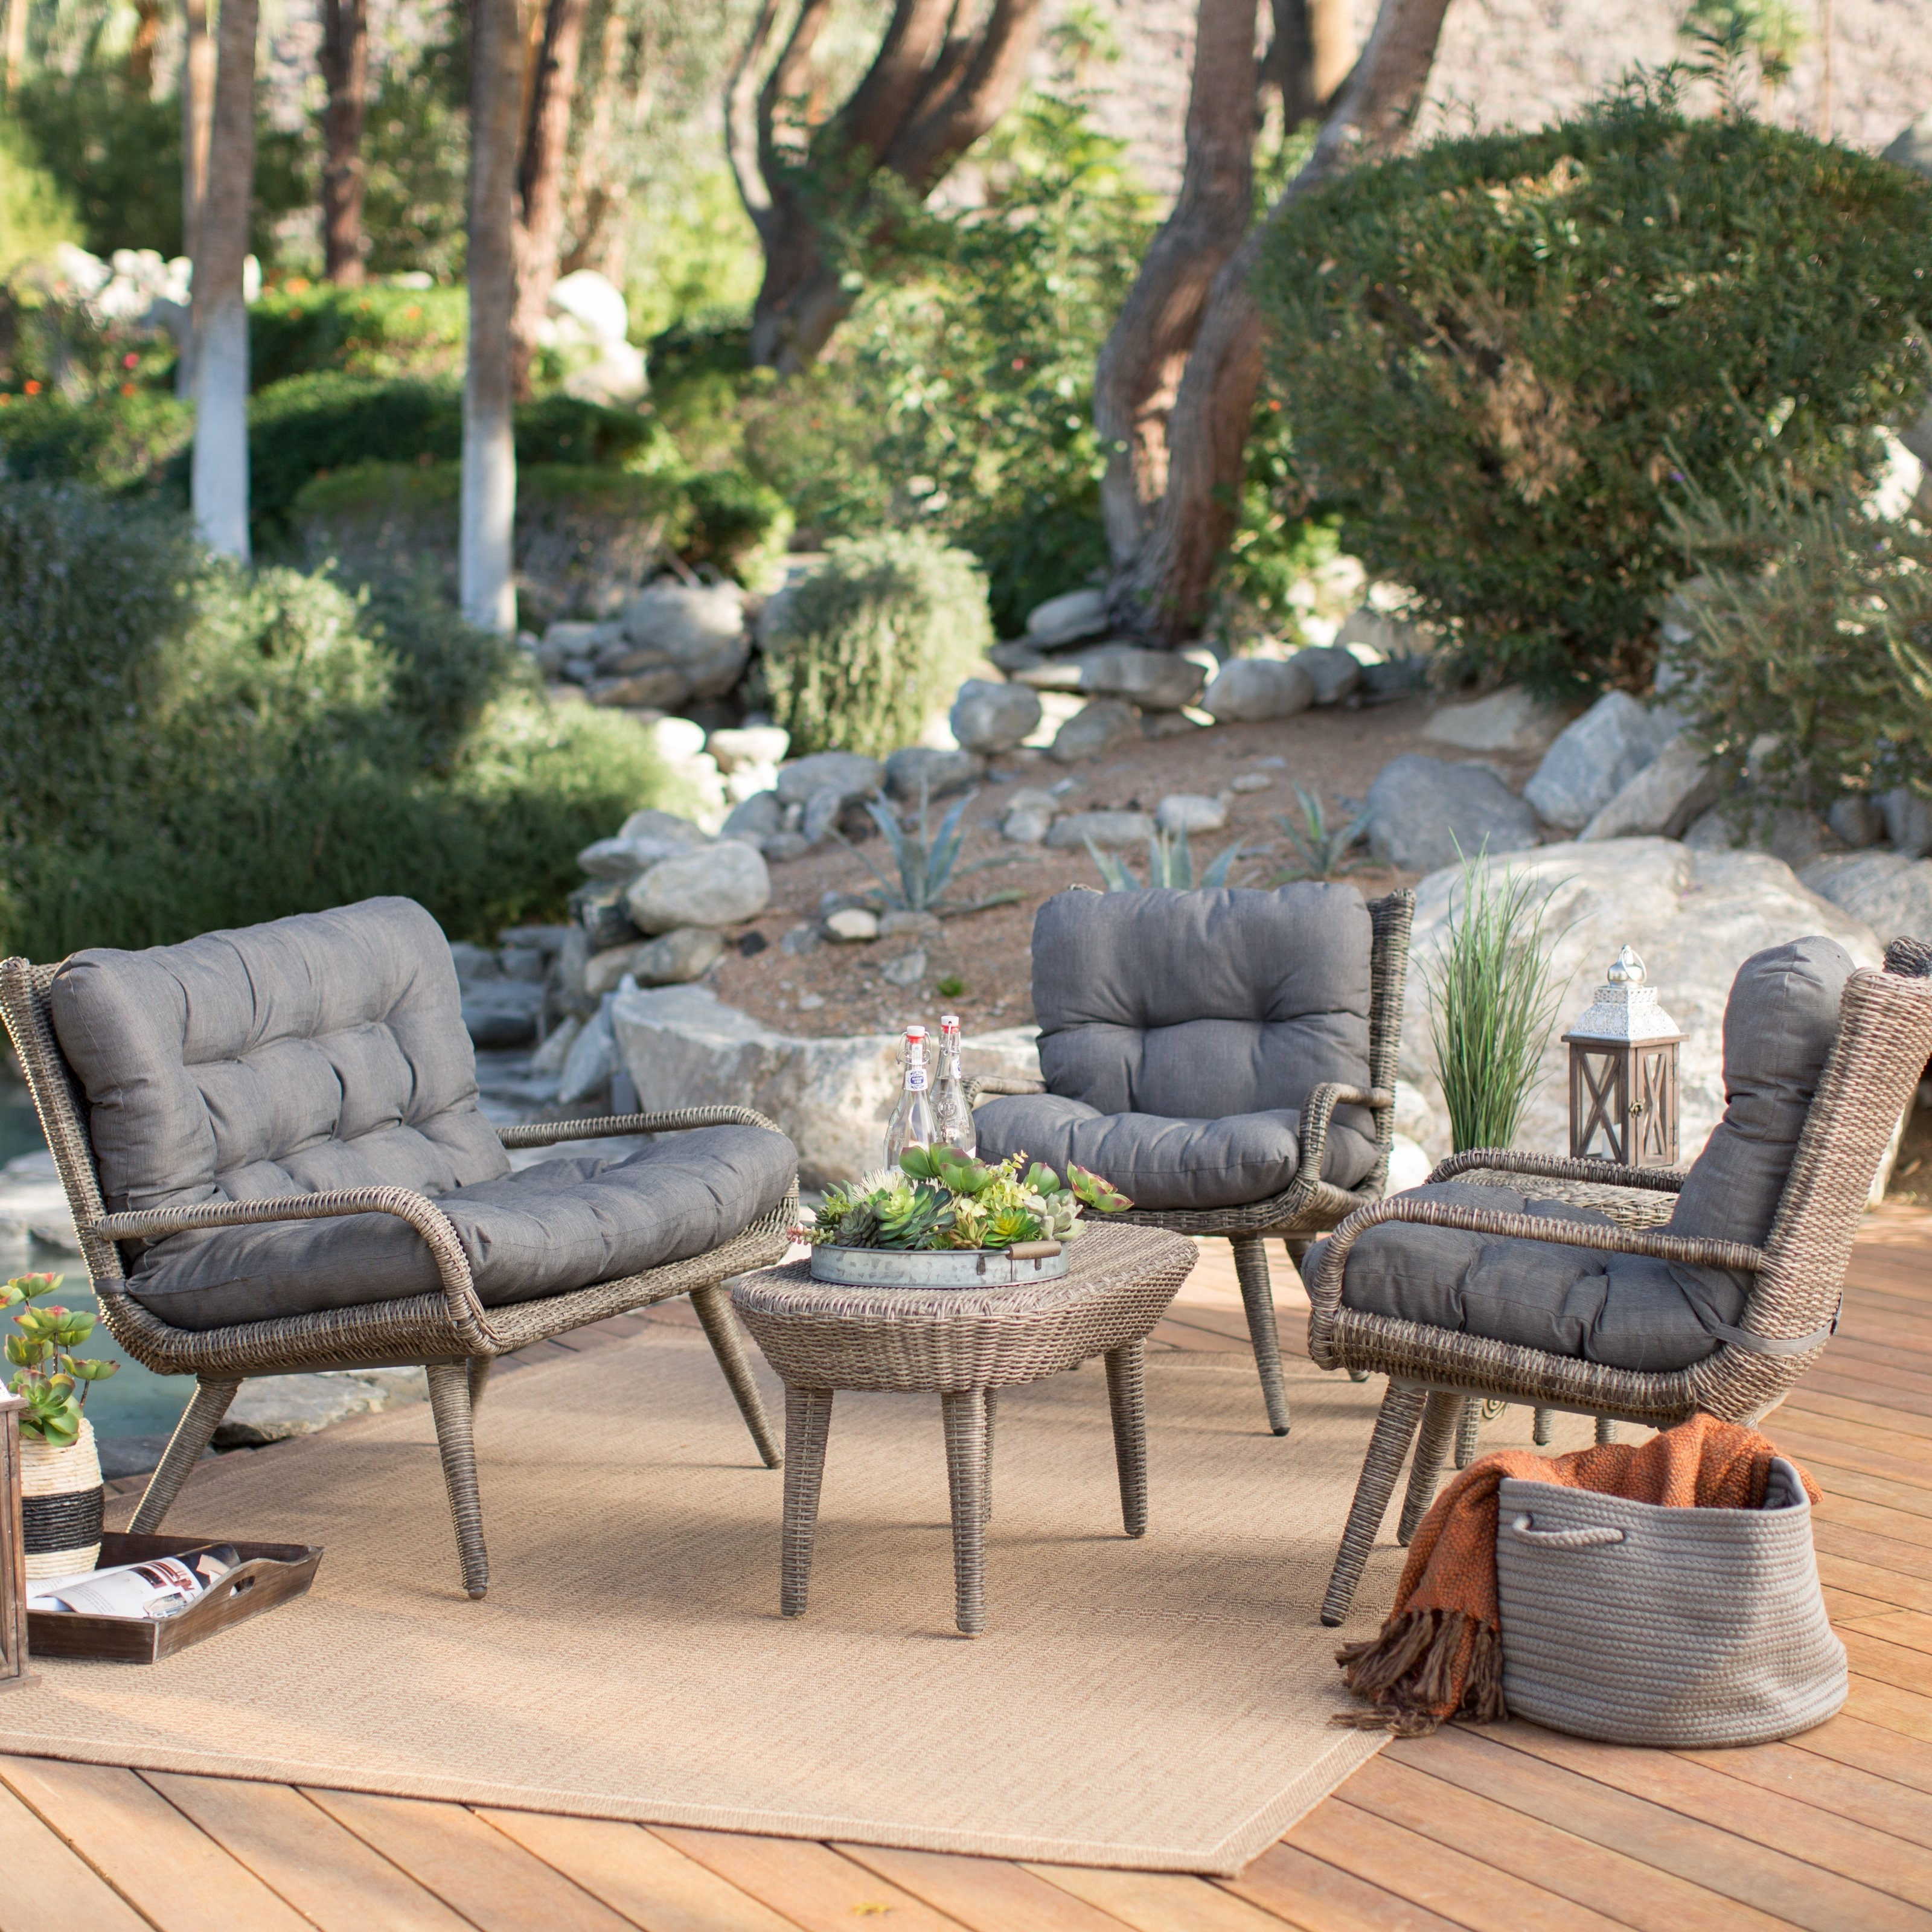 2017 Furniture: Exciting Outdoor Furniture With Gray Cushions On Beige Within Wood Patio Furniture Conversation Sets (View 14 of 15)